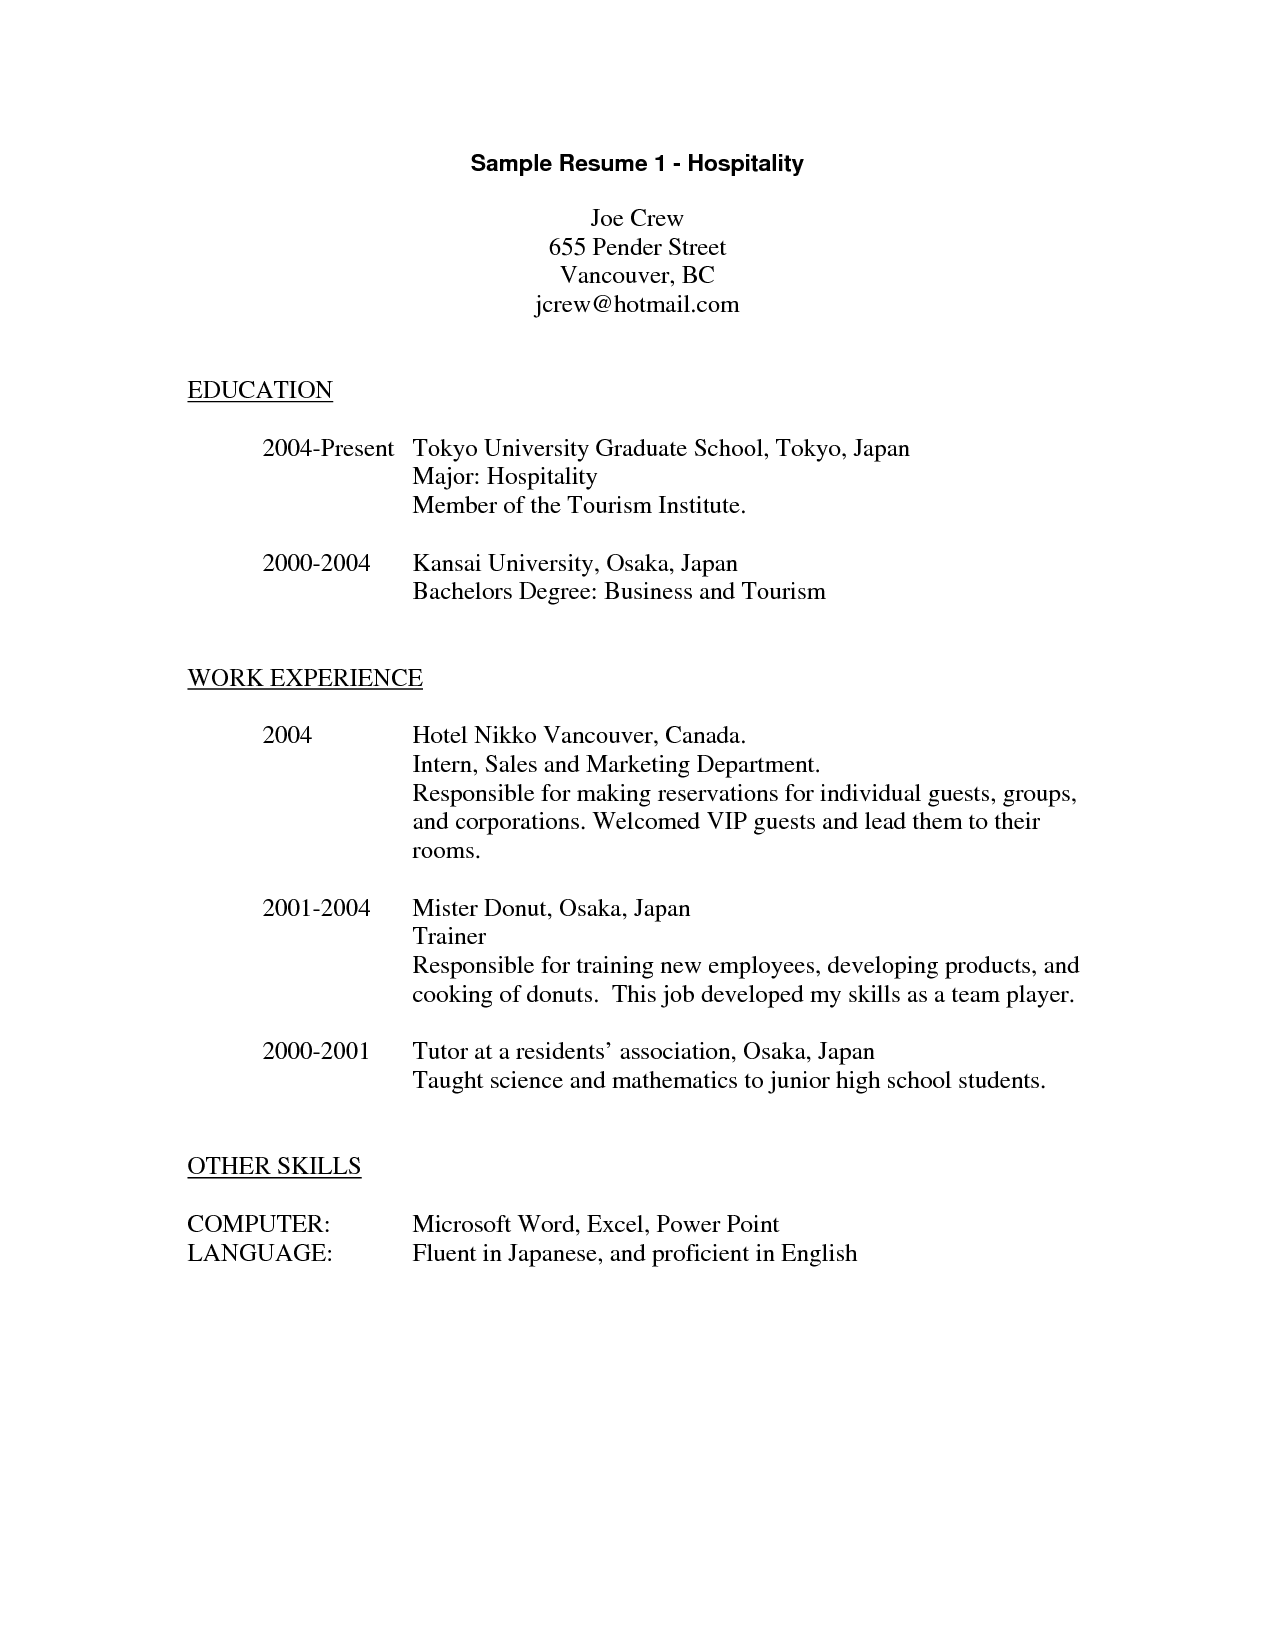 Sample Resume For Hospitality Industry Sample Resume For Hospitality ...